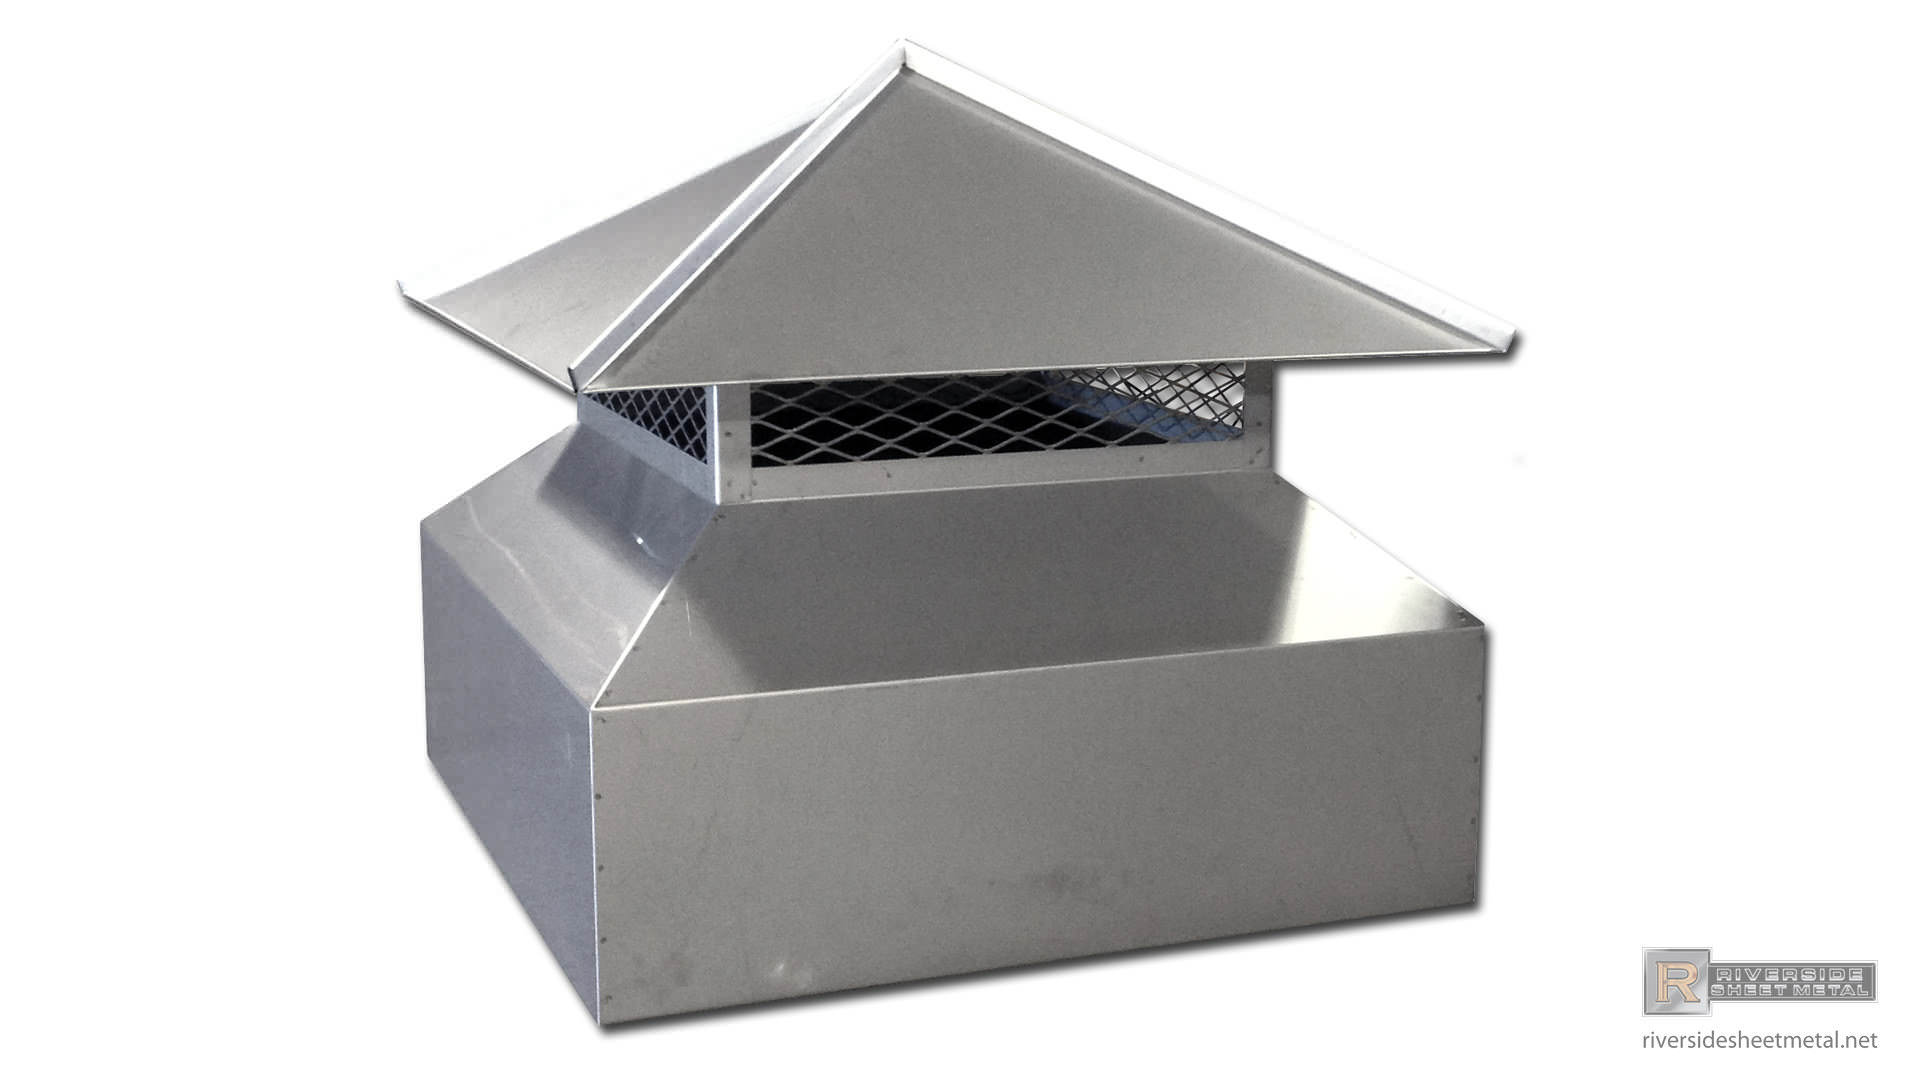 Steel Roof Chimney : Angled copper chimney cap with standing seam panels on a